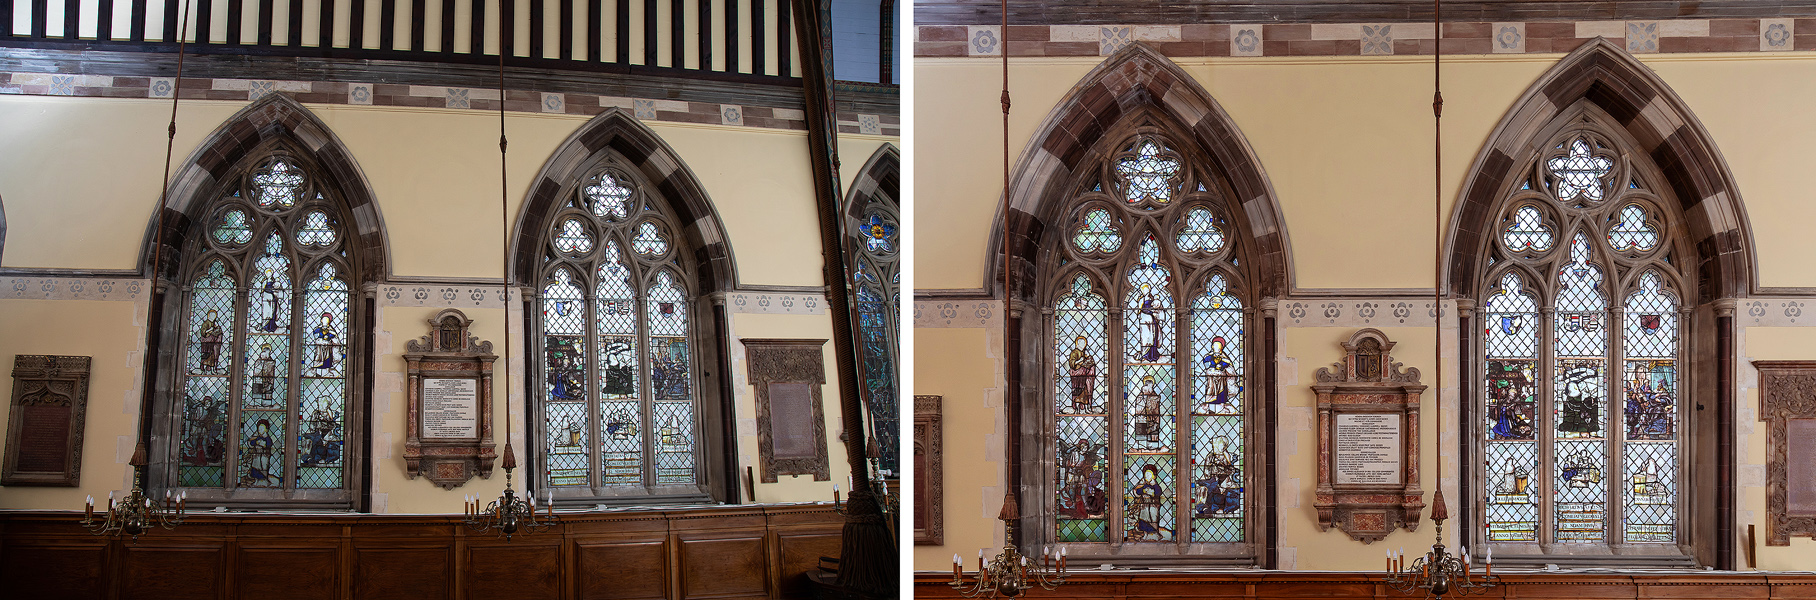 Extreme example of post production perspective control. Camera position was optimal for ensuring chandelier ropes did not cover window but significant post production required to shift windows round and even out exposure across each window.